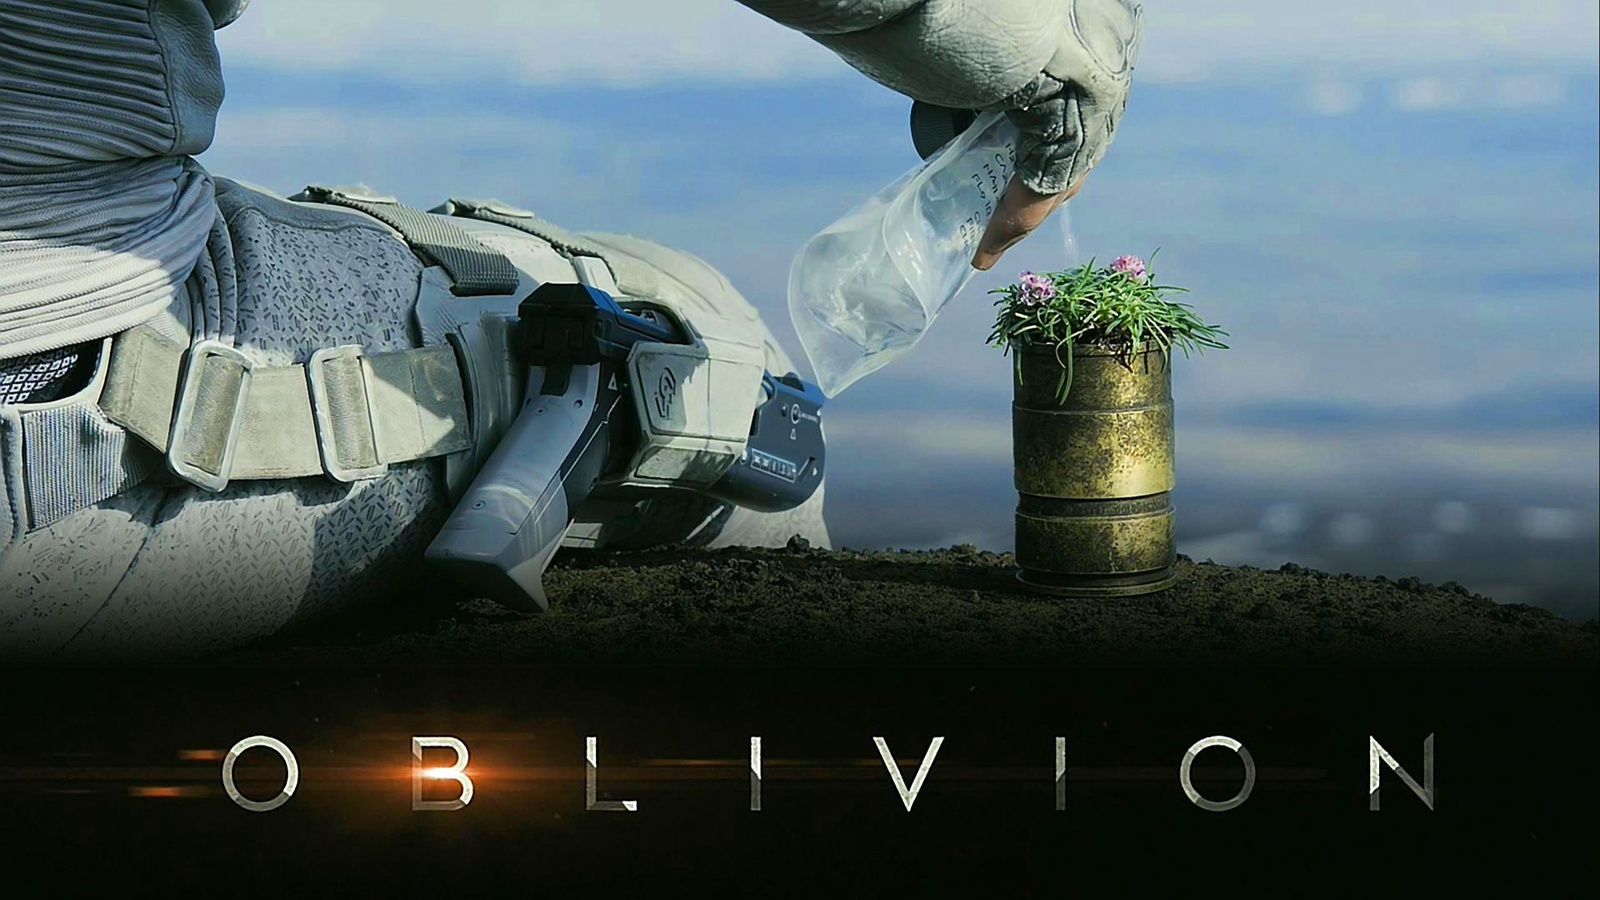 Обливион / Oblivion background